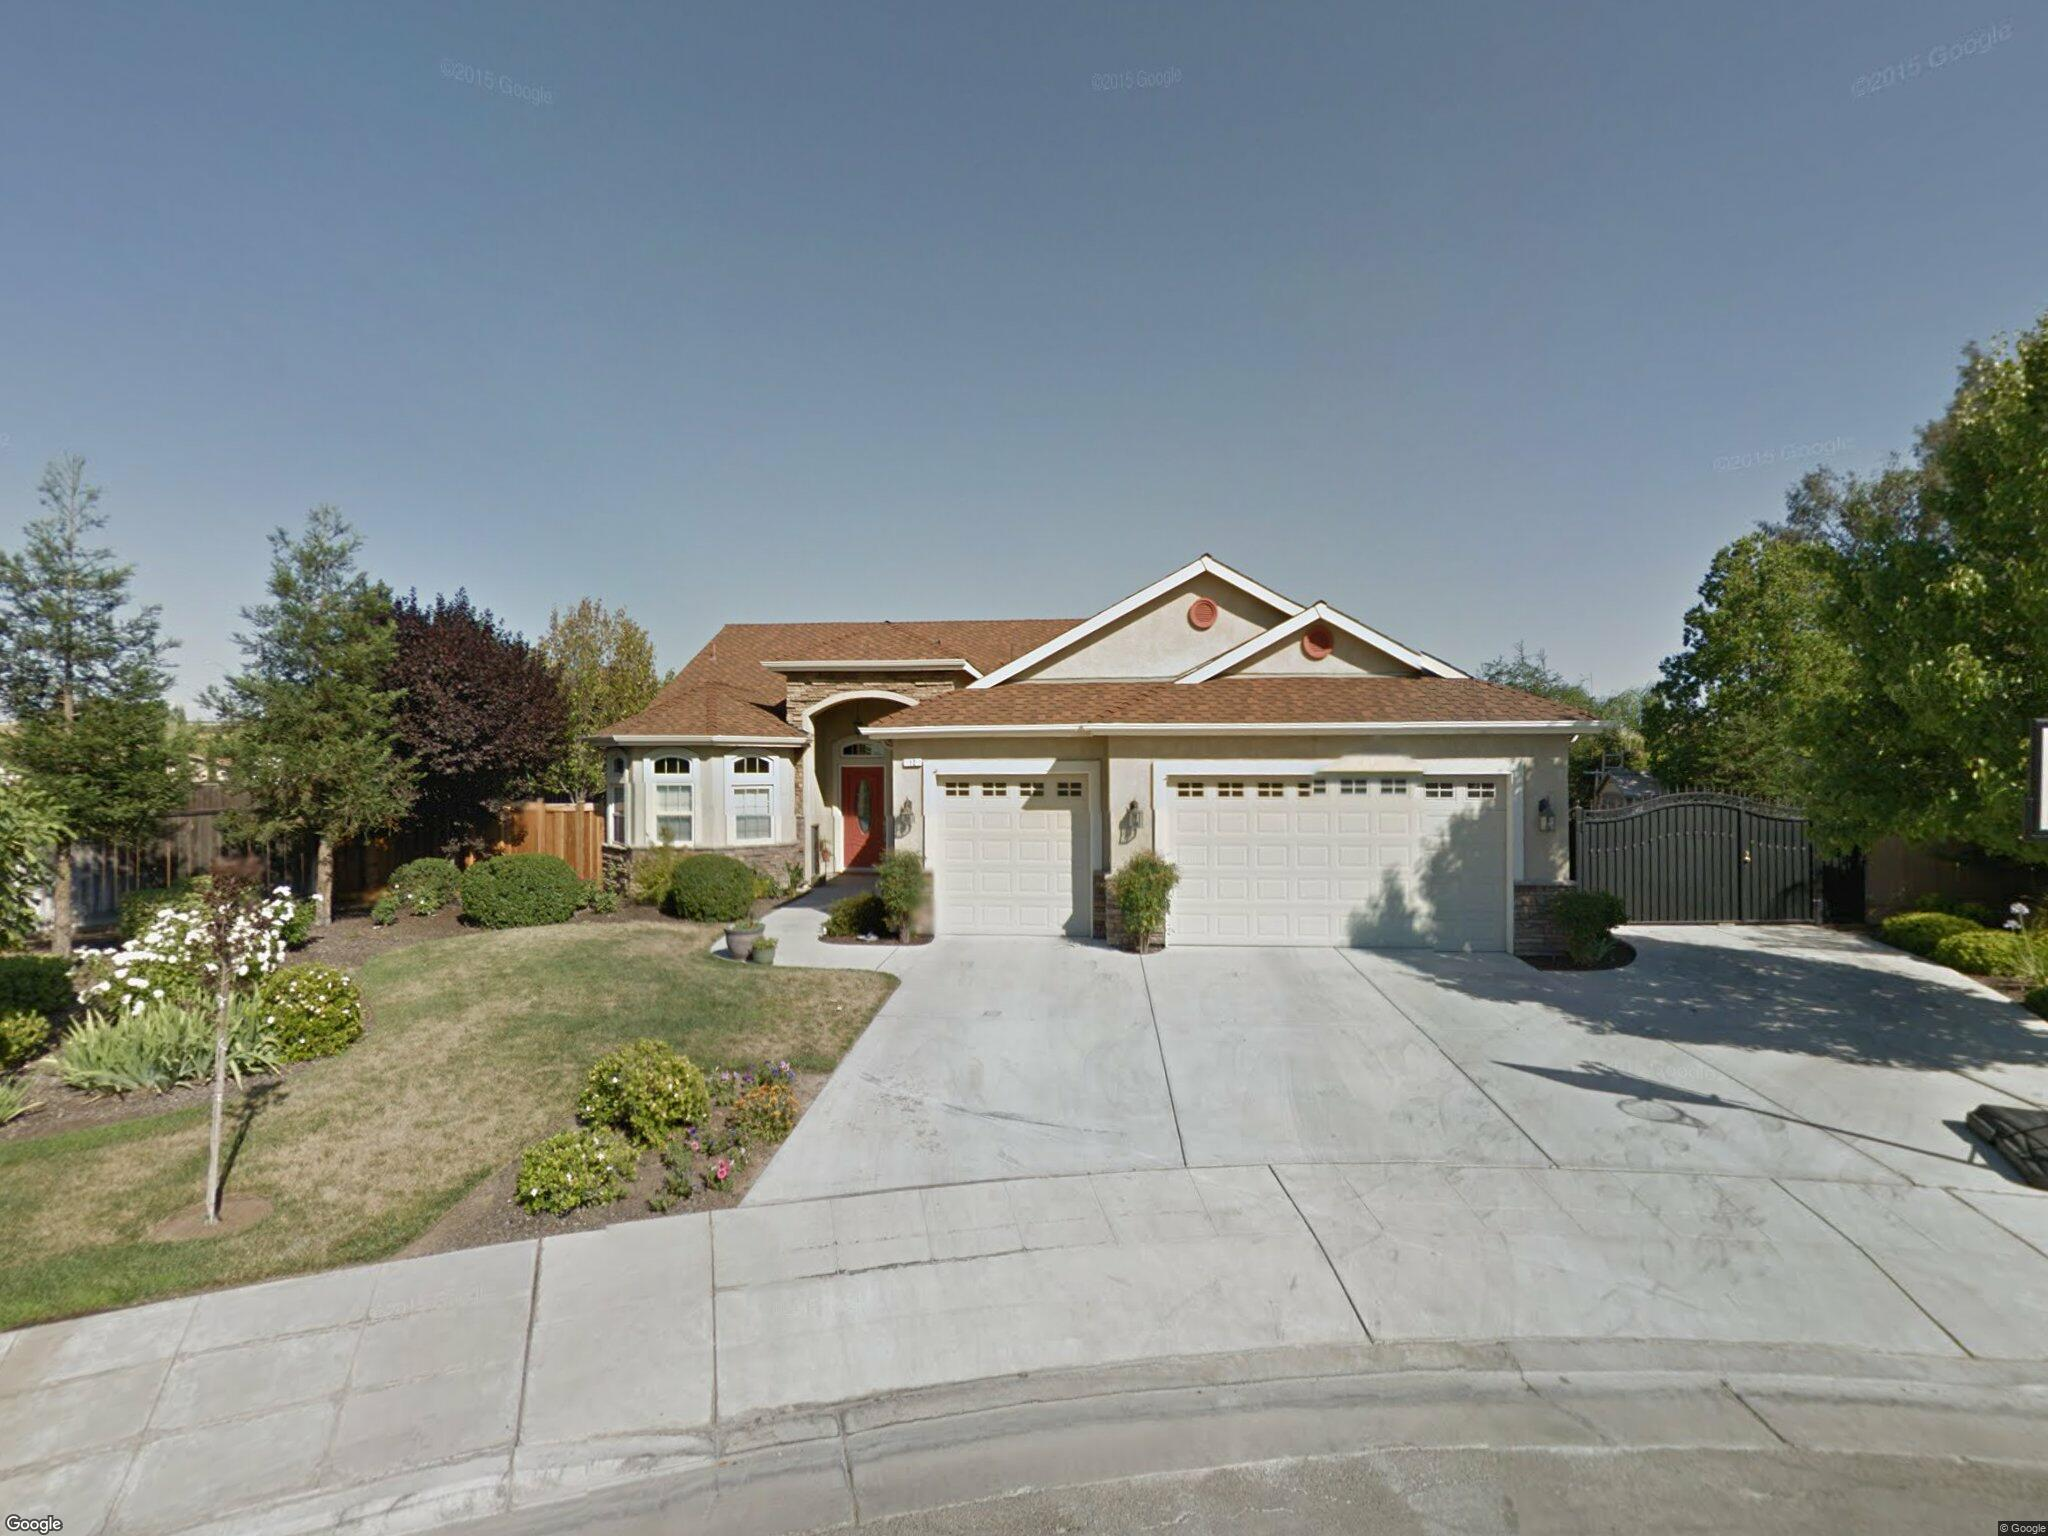 Clovis Ca Zip Code Map.12 W Menlo Ave Clovis Ca 93612 Foreclosure Trulia